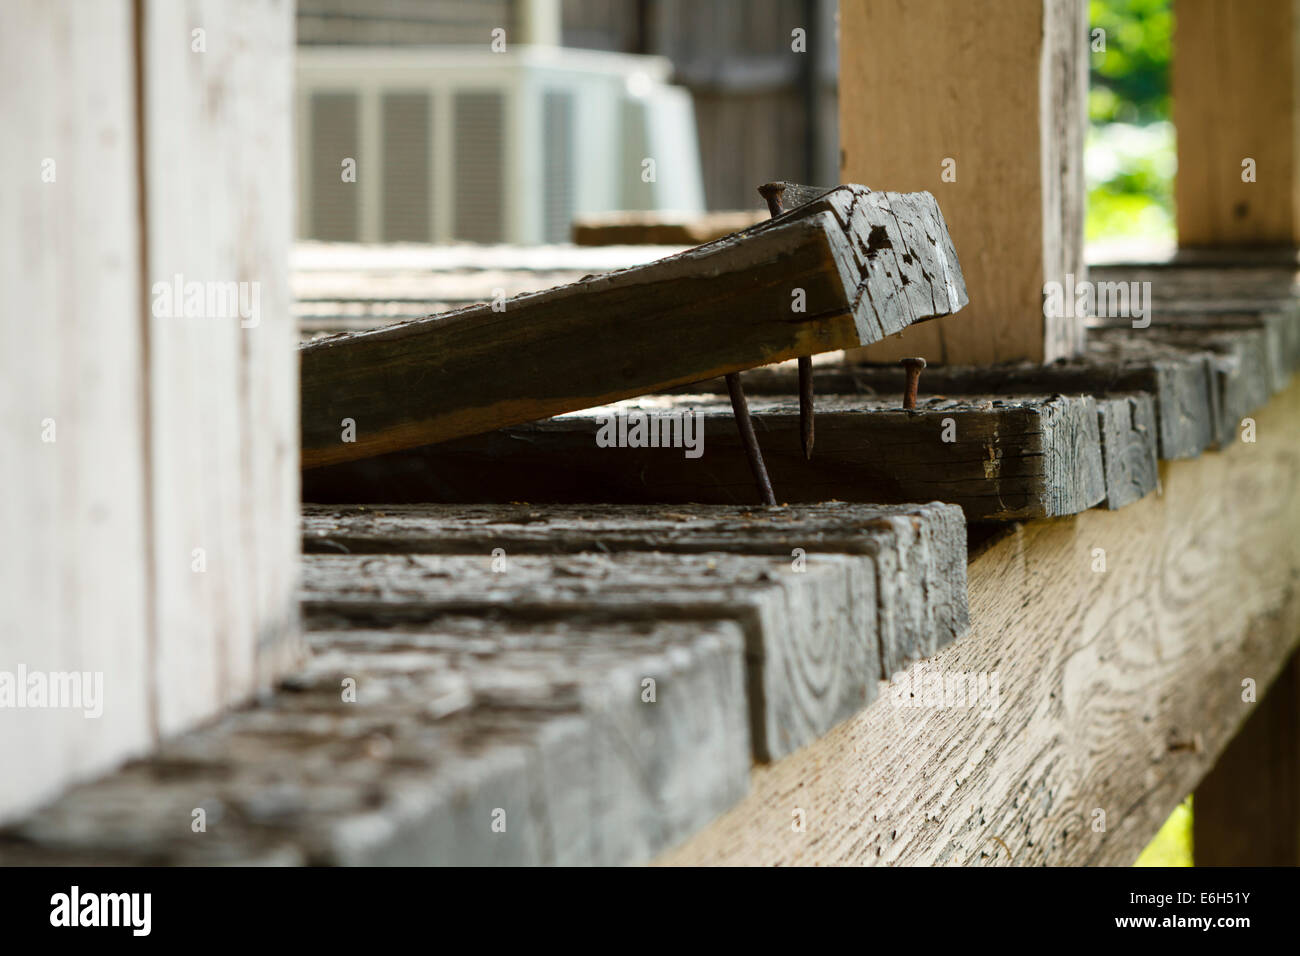 Shallow focus on an residential house deck board plank that has warped and is curling up from exposure to the elements - Stock Image